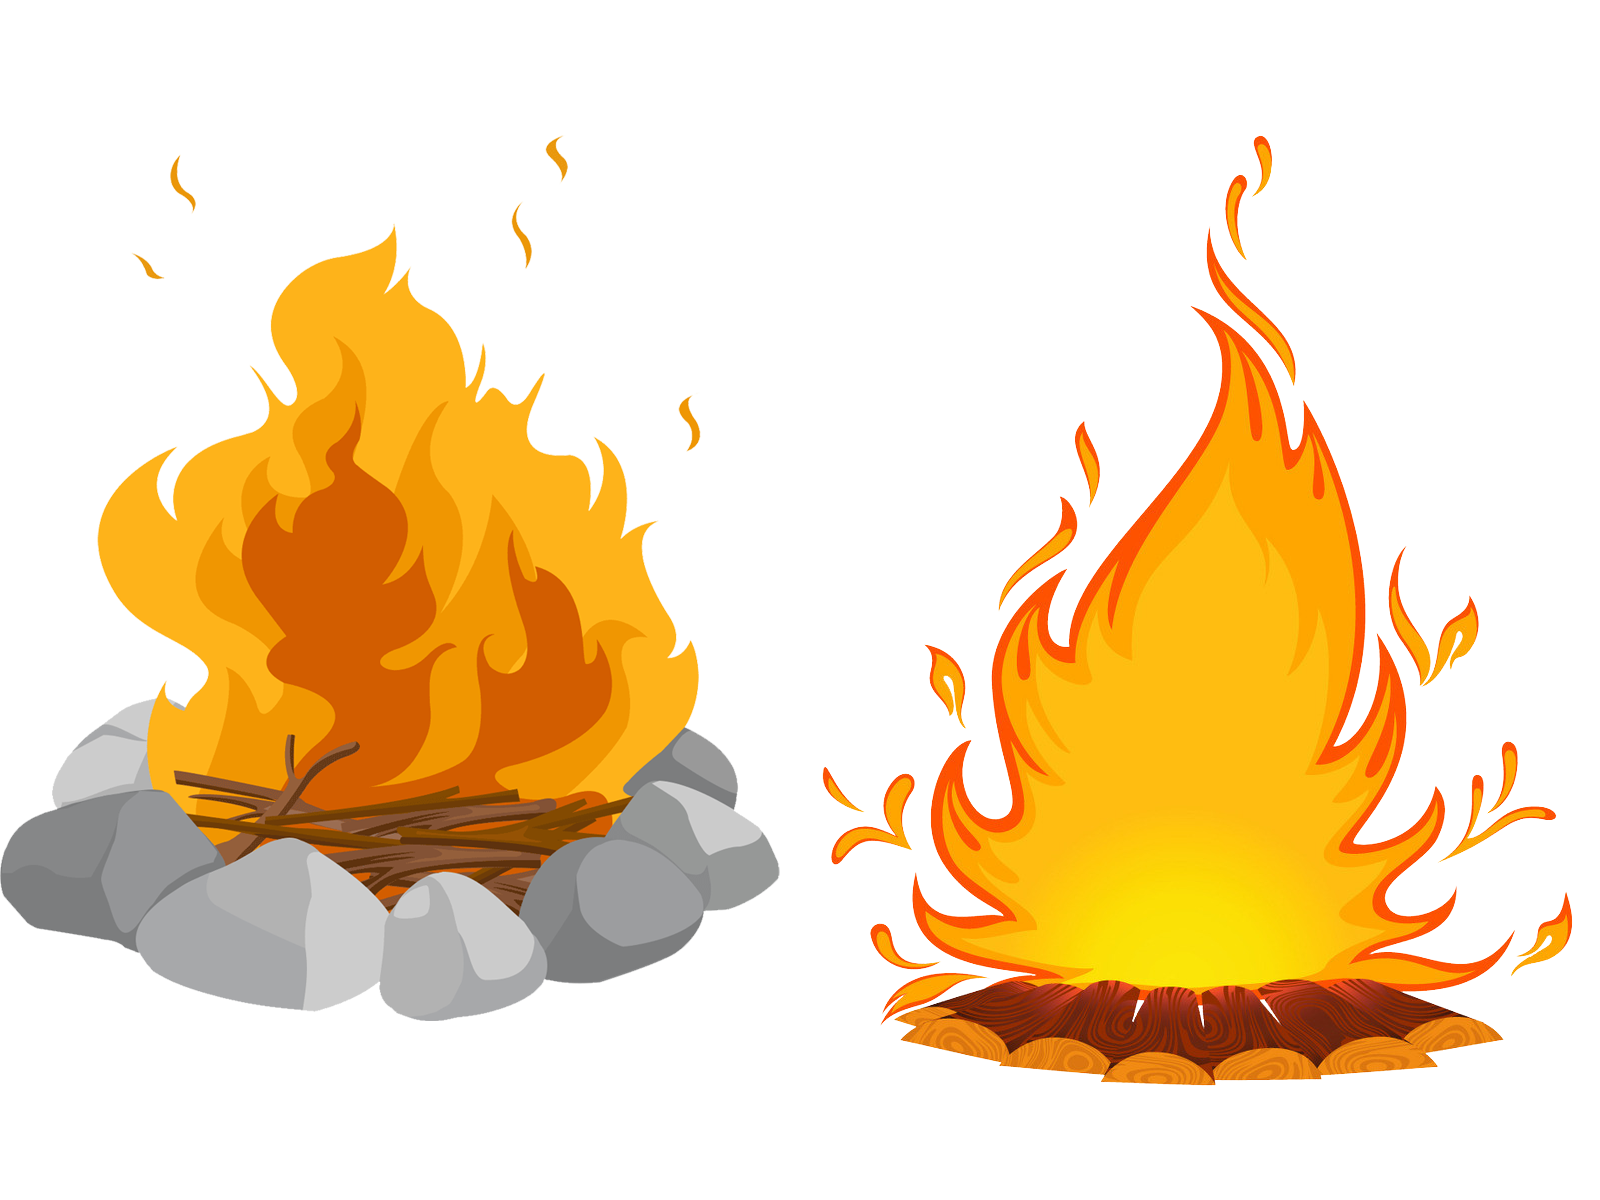 Fries clipart uses heat. Bonfire campfire clip art